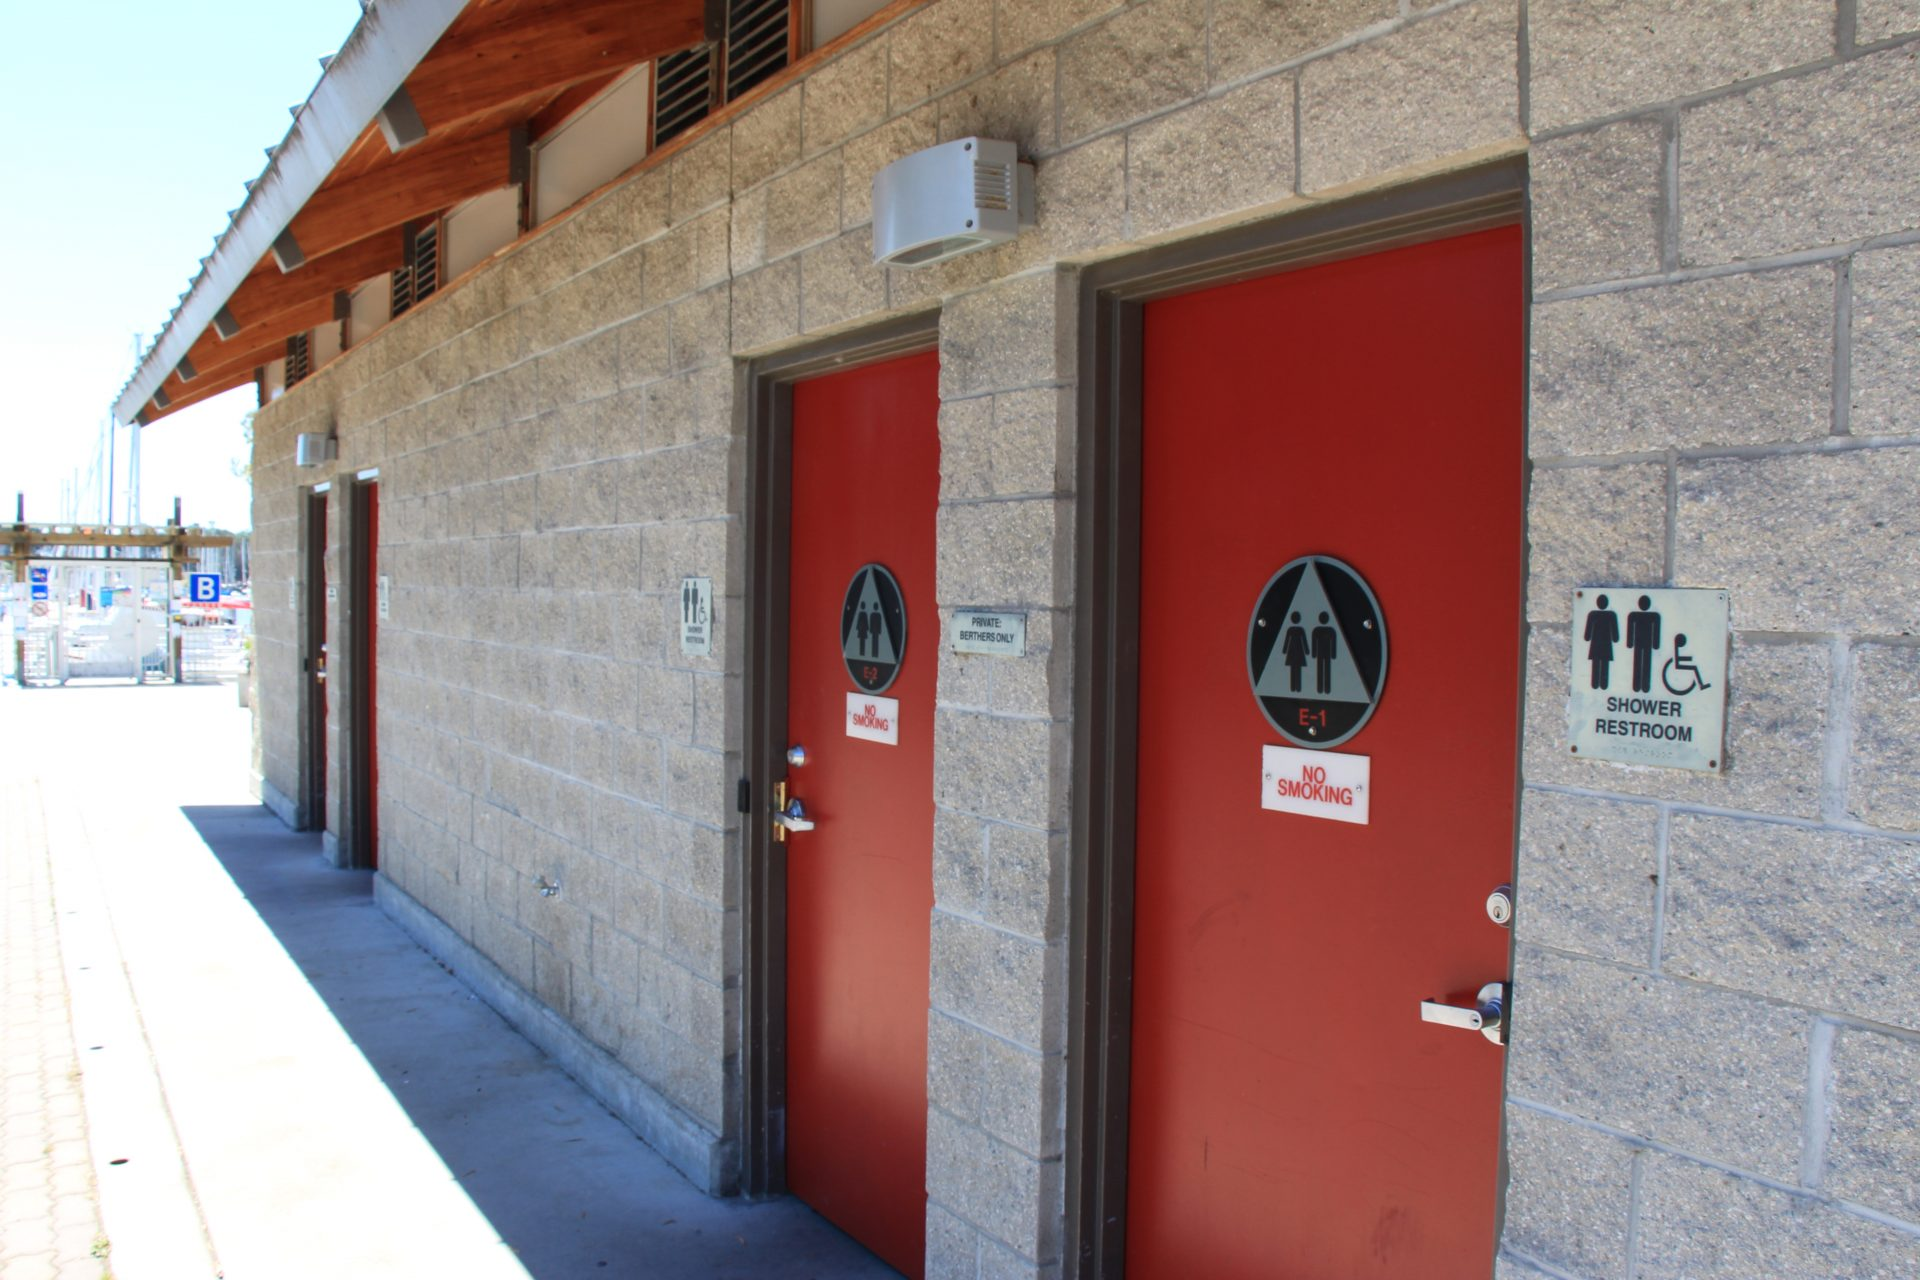 Cinderblock building with unisex, accessible showers/restrooms